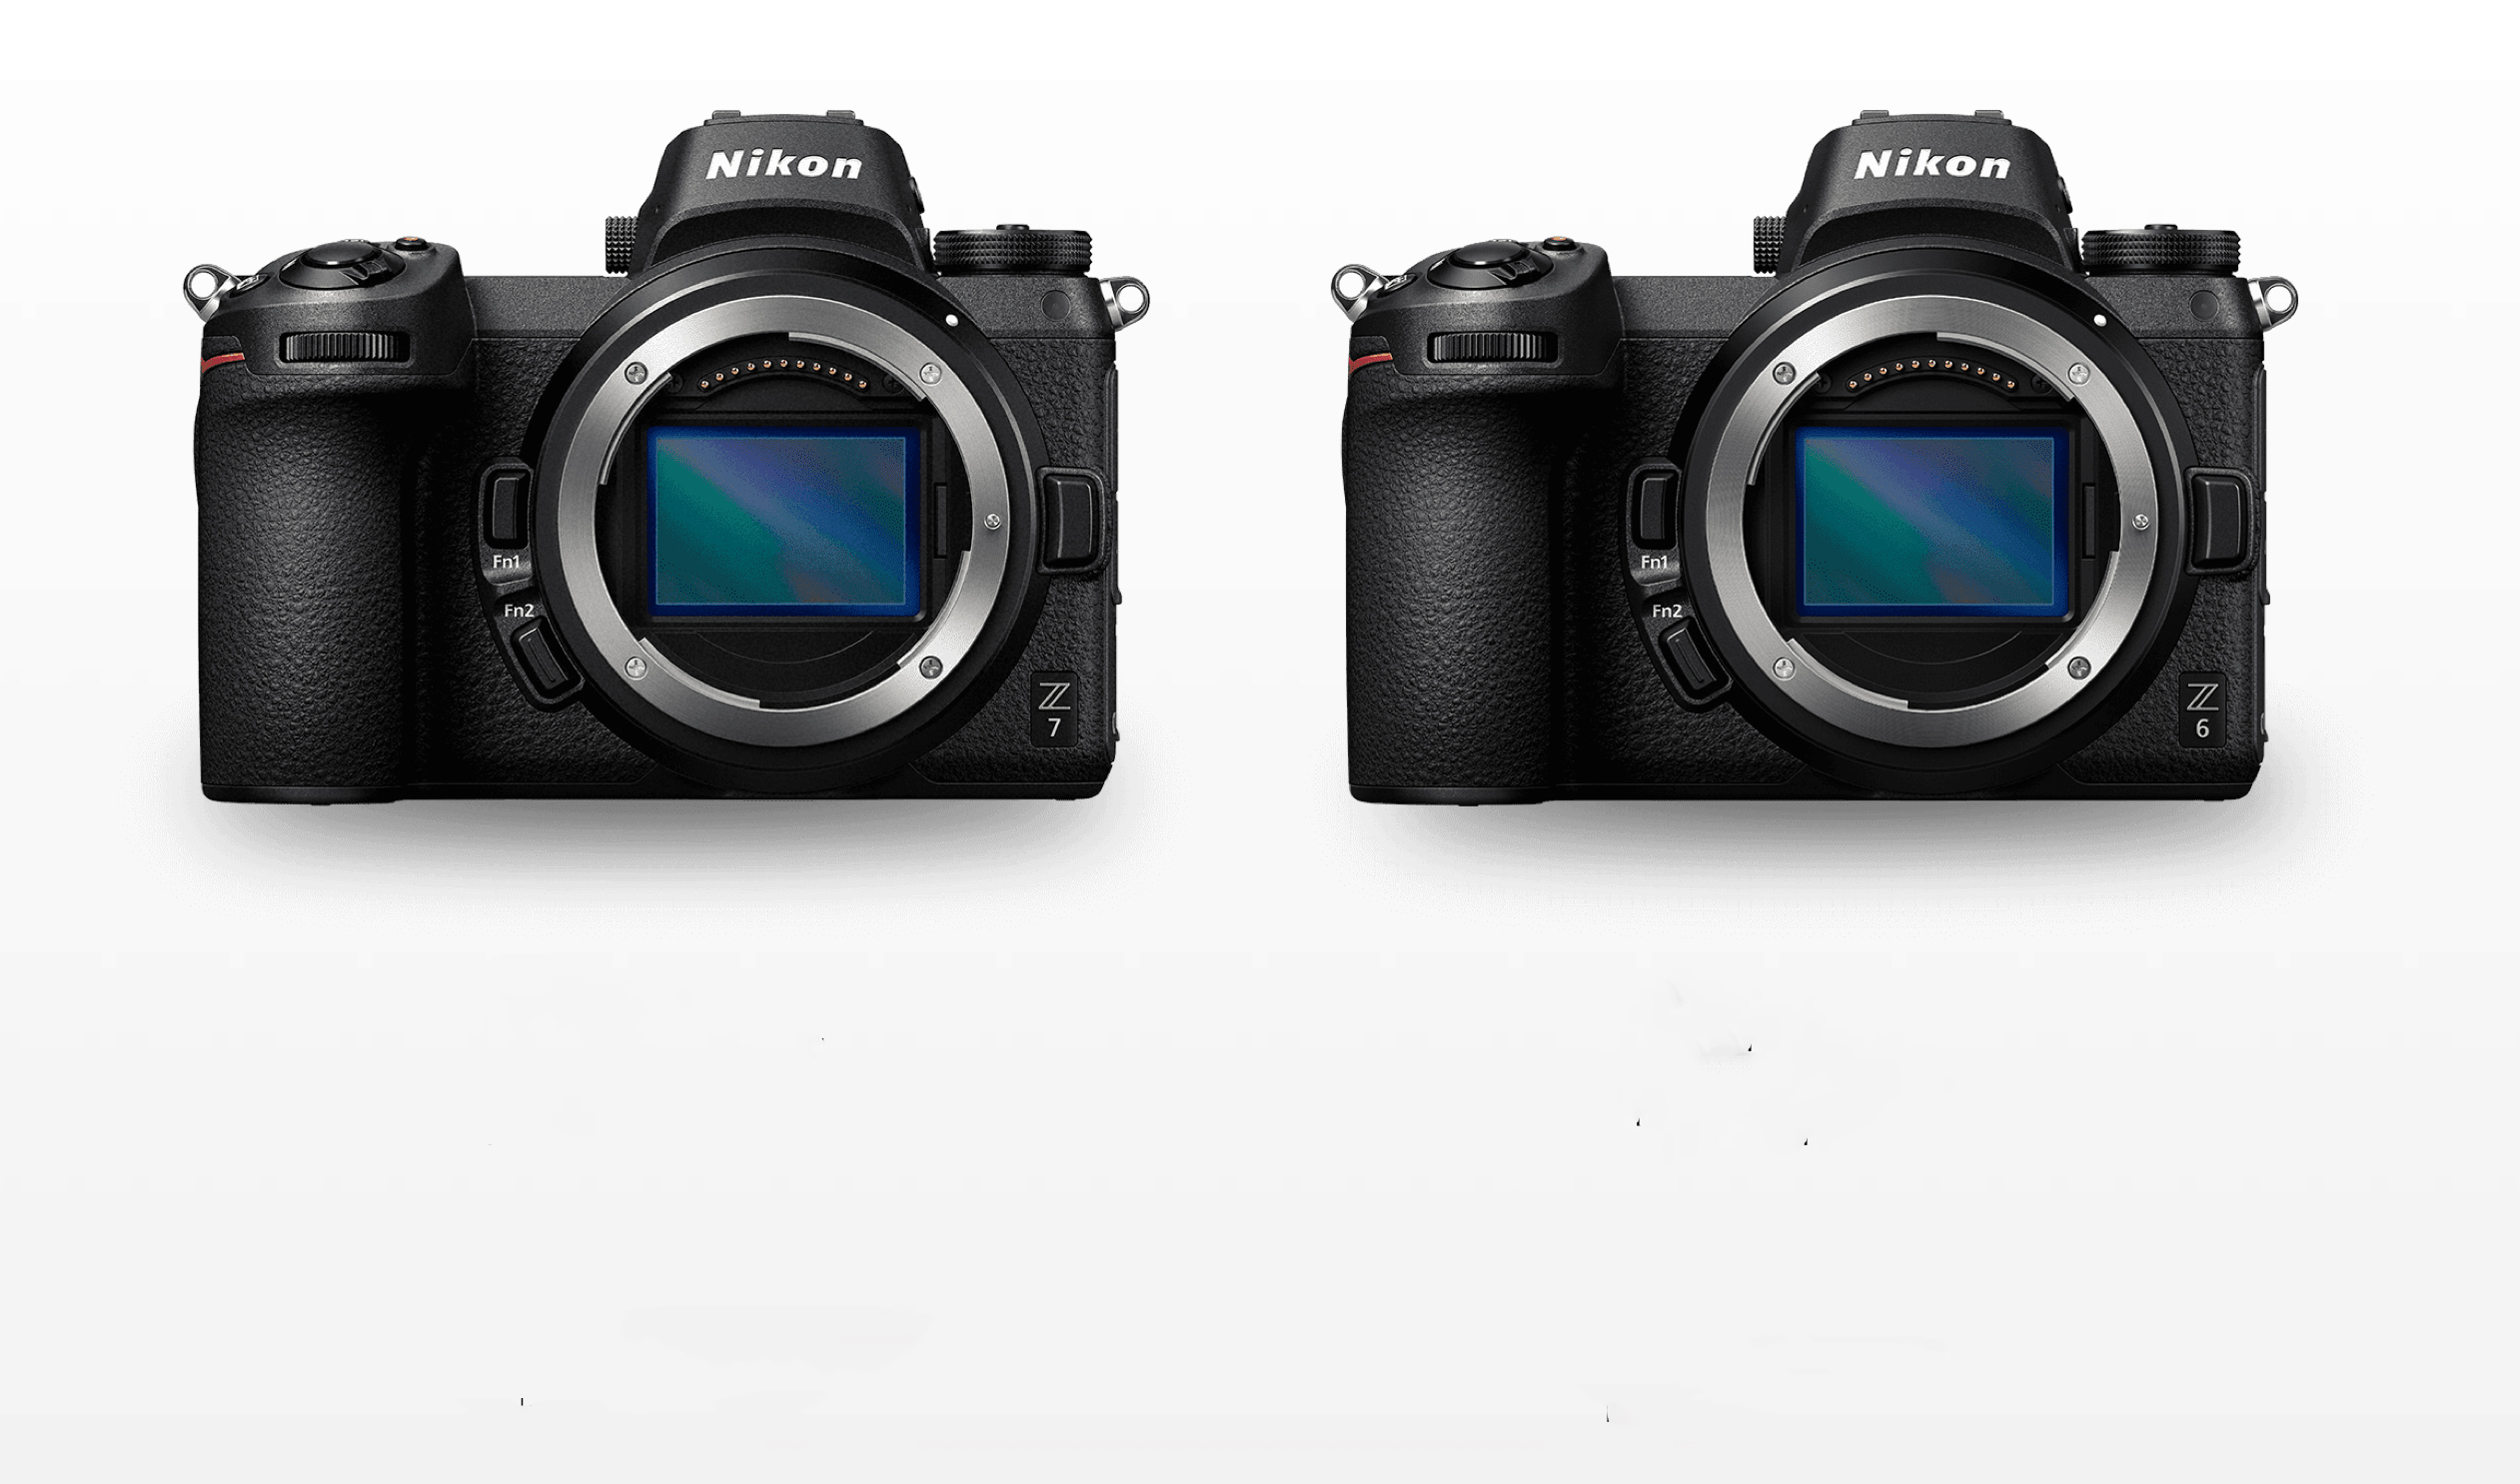 Nikon Gears Up For The Future With The Full-Frame Mirrorless Z6 and Z7